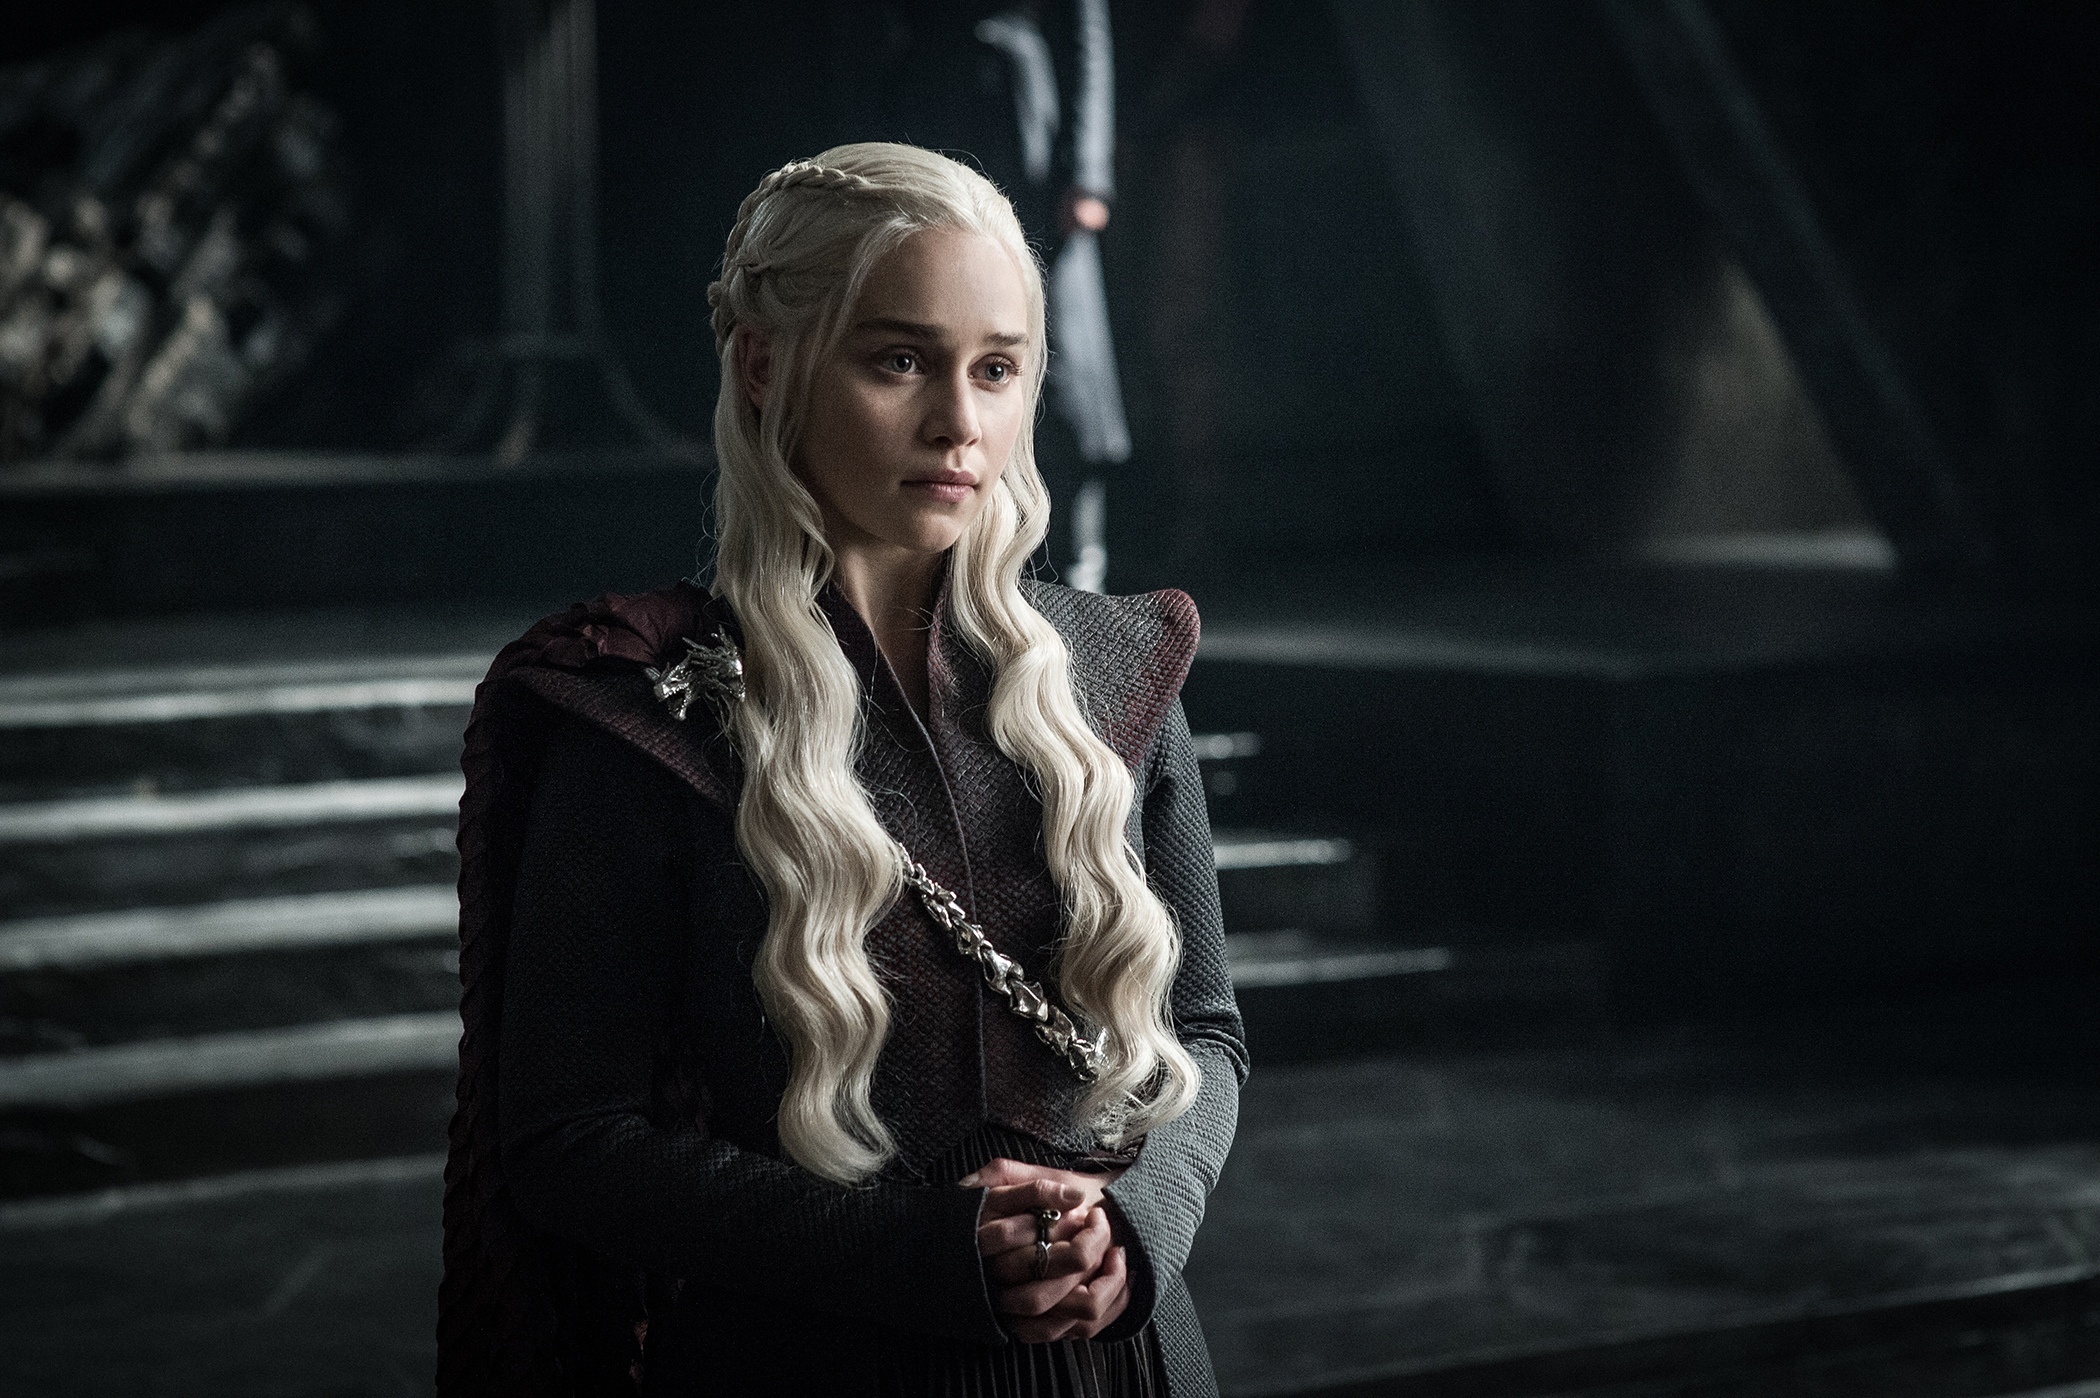 Get Your First Look at Some Game of Thrones Season 7 Photos